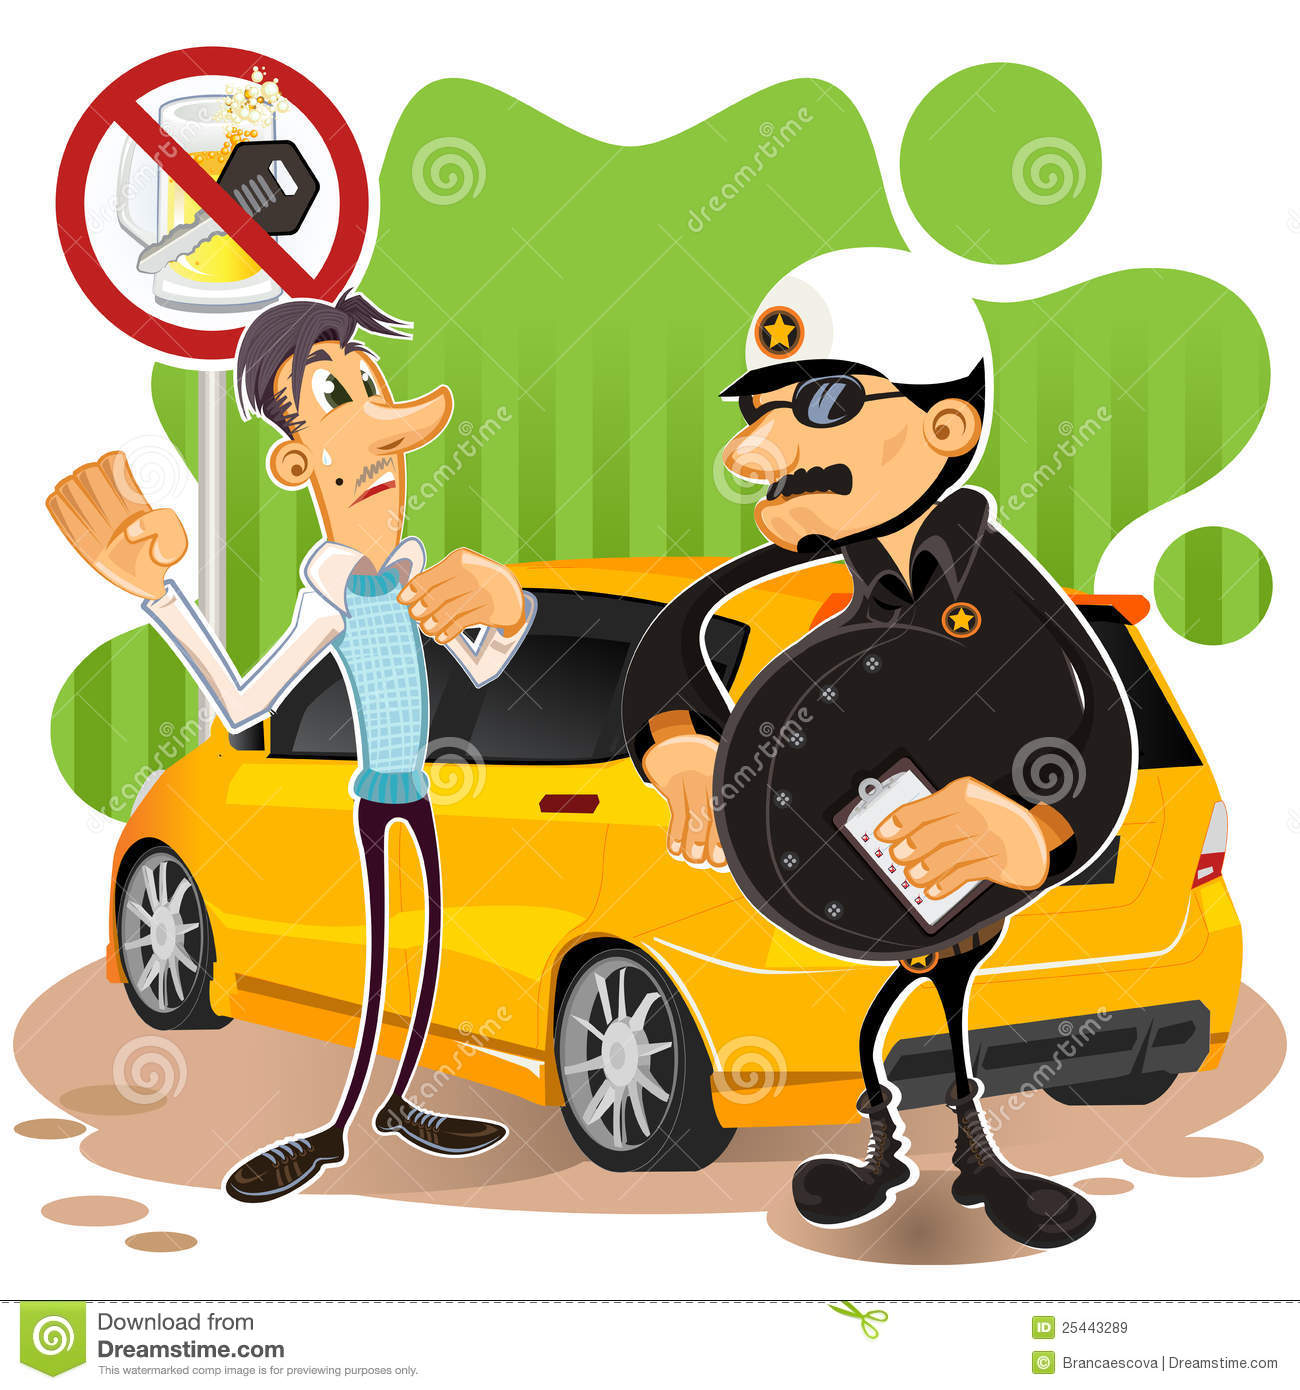 driving under influence Free consultation - call (714) 544-9844 - rudolph e loewenstein aggressively represents the accused against charges in crime & criminal defense cases driving under the influence - orange county crime lawyer.